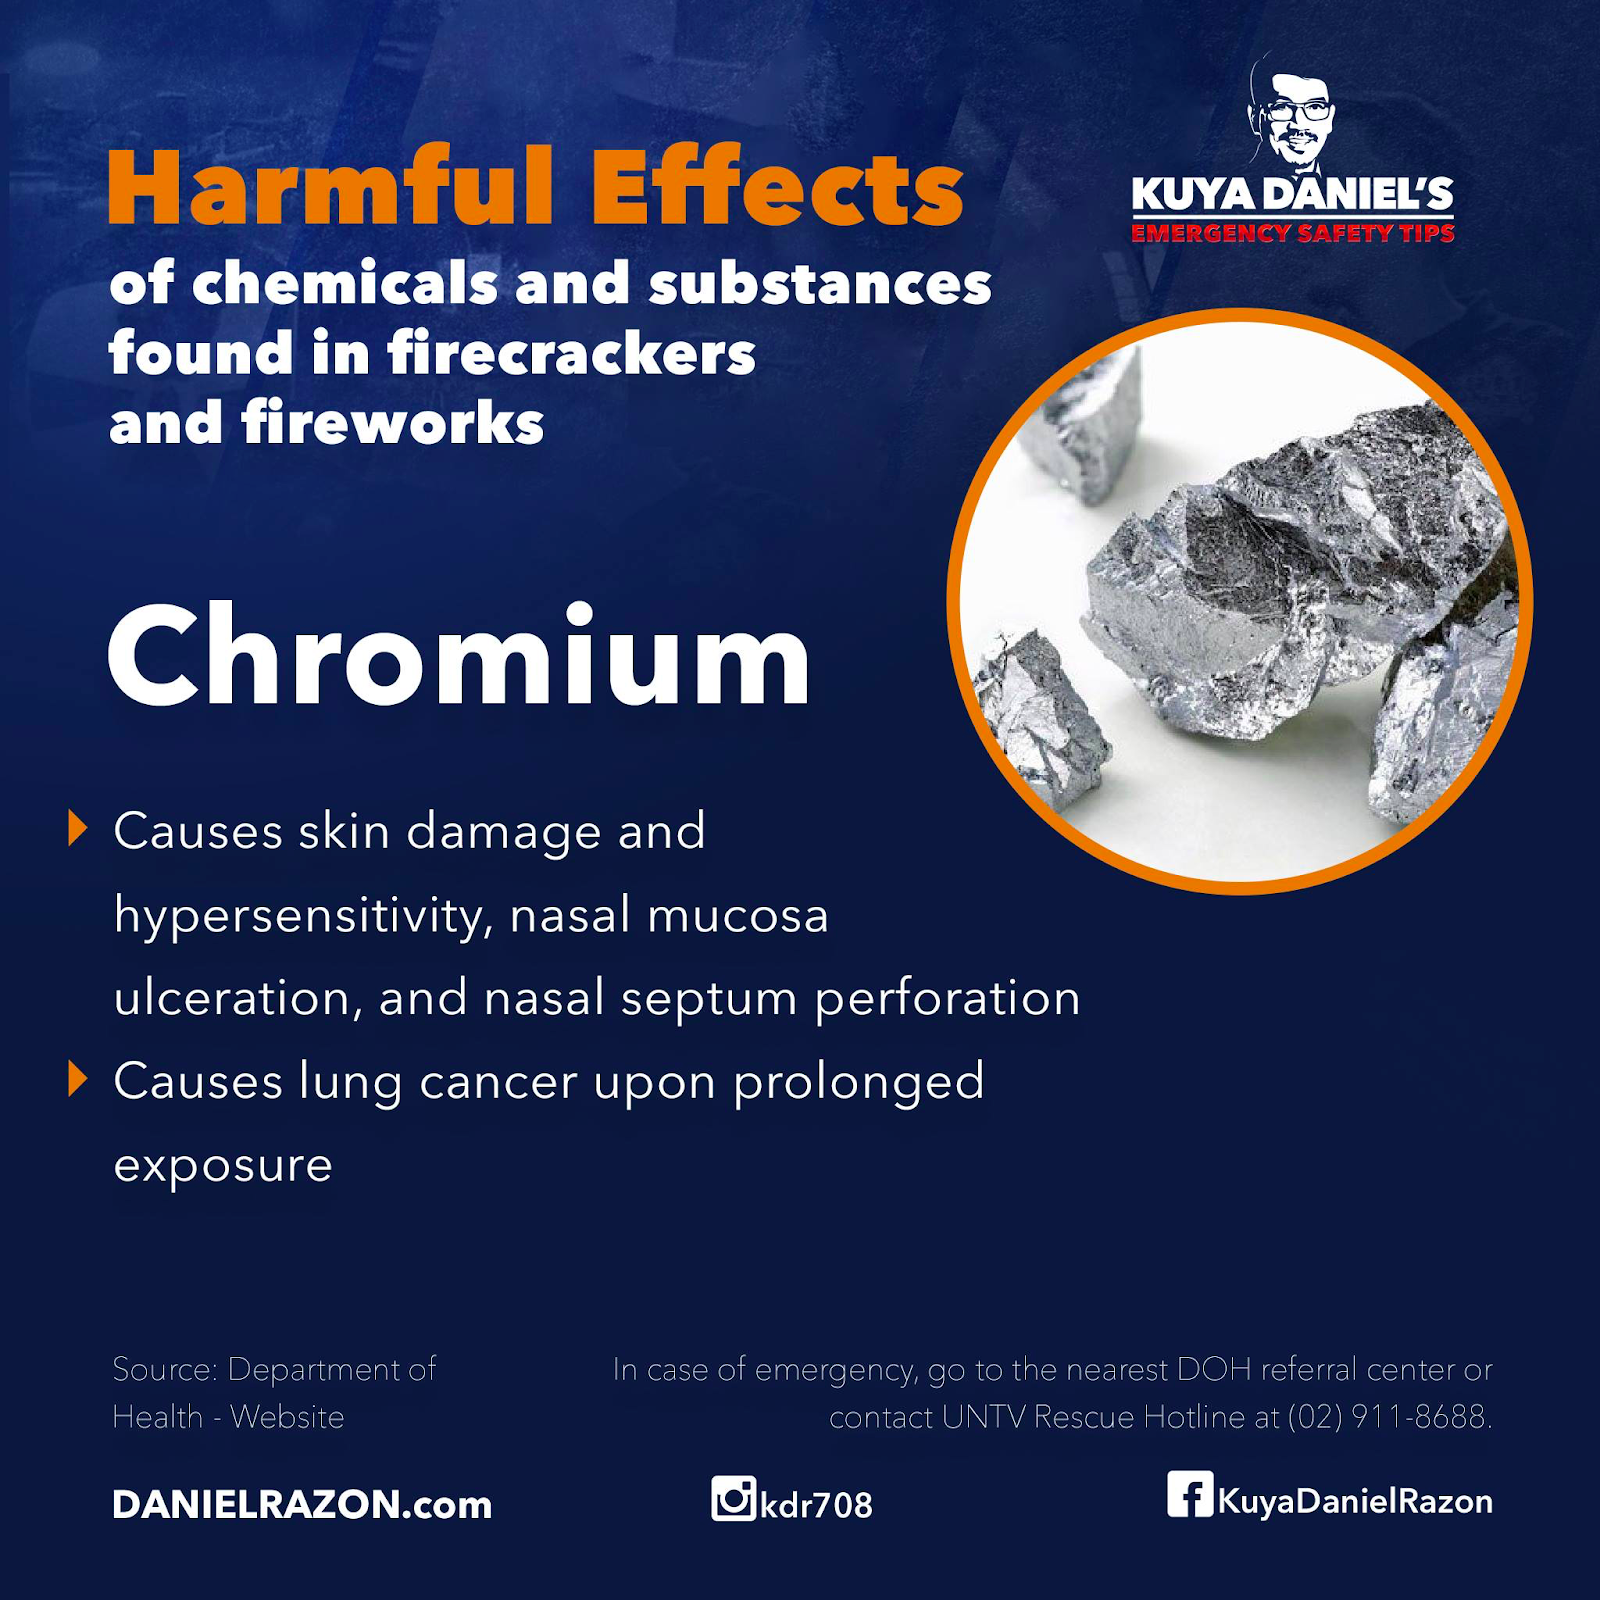 harmful effects of chromium in firecrackers and fireworks